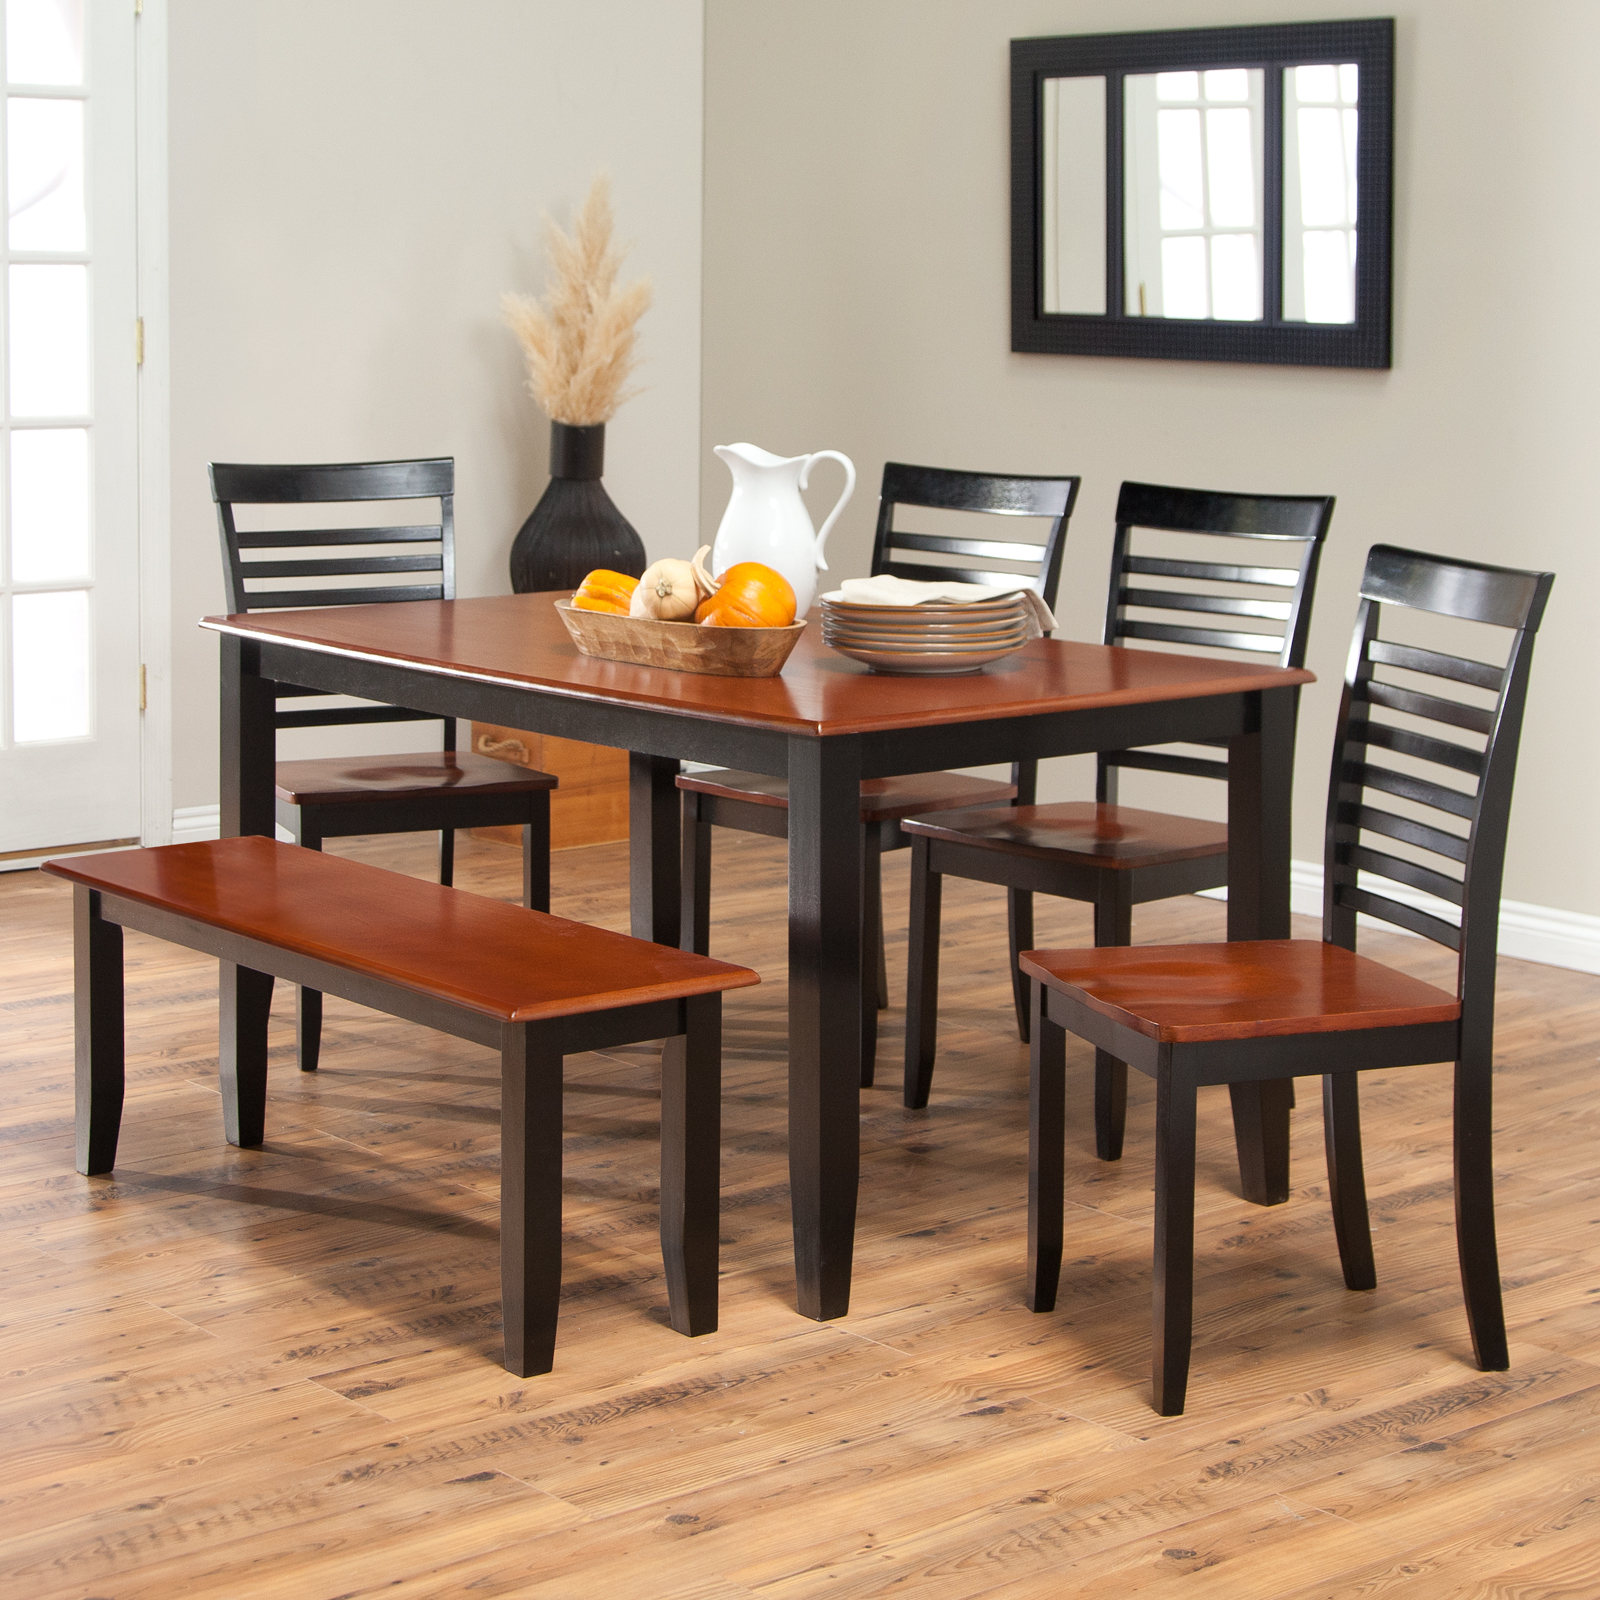 Boraam Bloomington Dining Table Set - Black/Cherry & Cherry Kitchen u0026 Dining Table Sets | Hayneedle